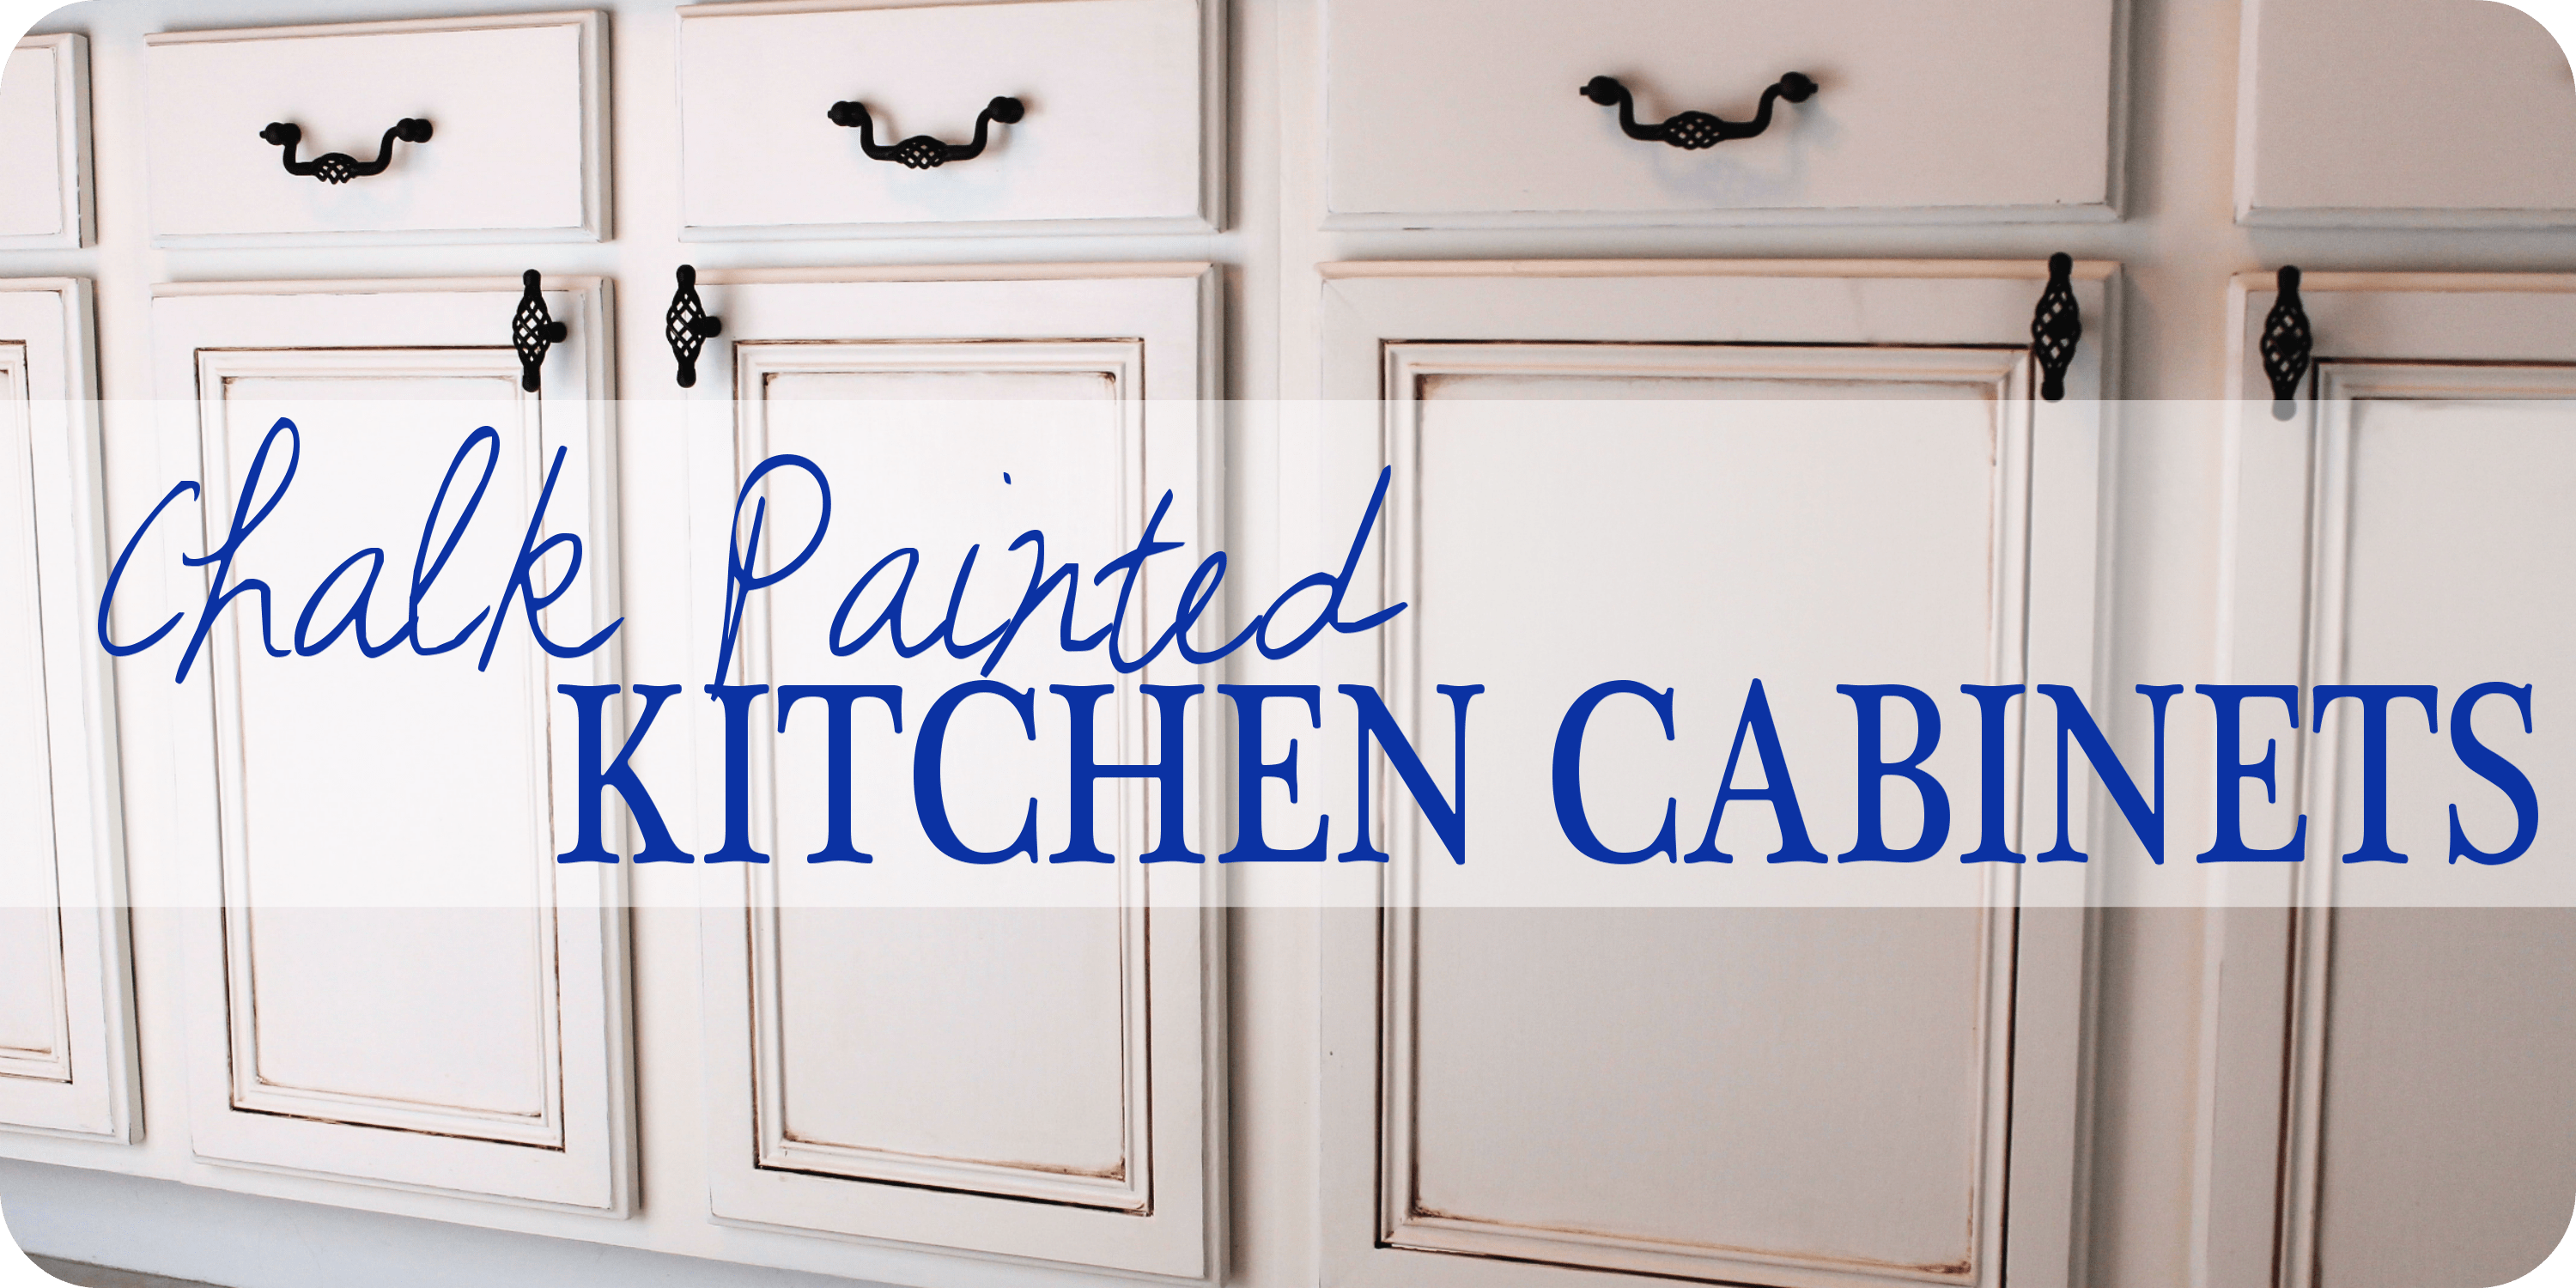 painted kitchen cabinets chalk paint painted kitchen cabinets painted kitchen cabinets